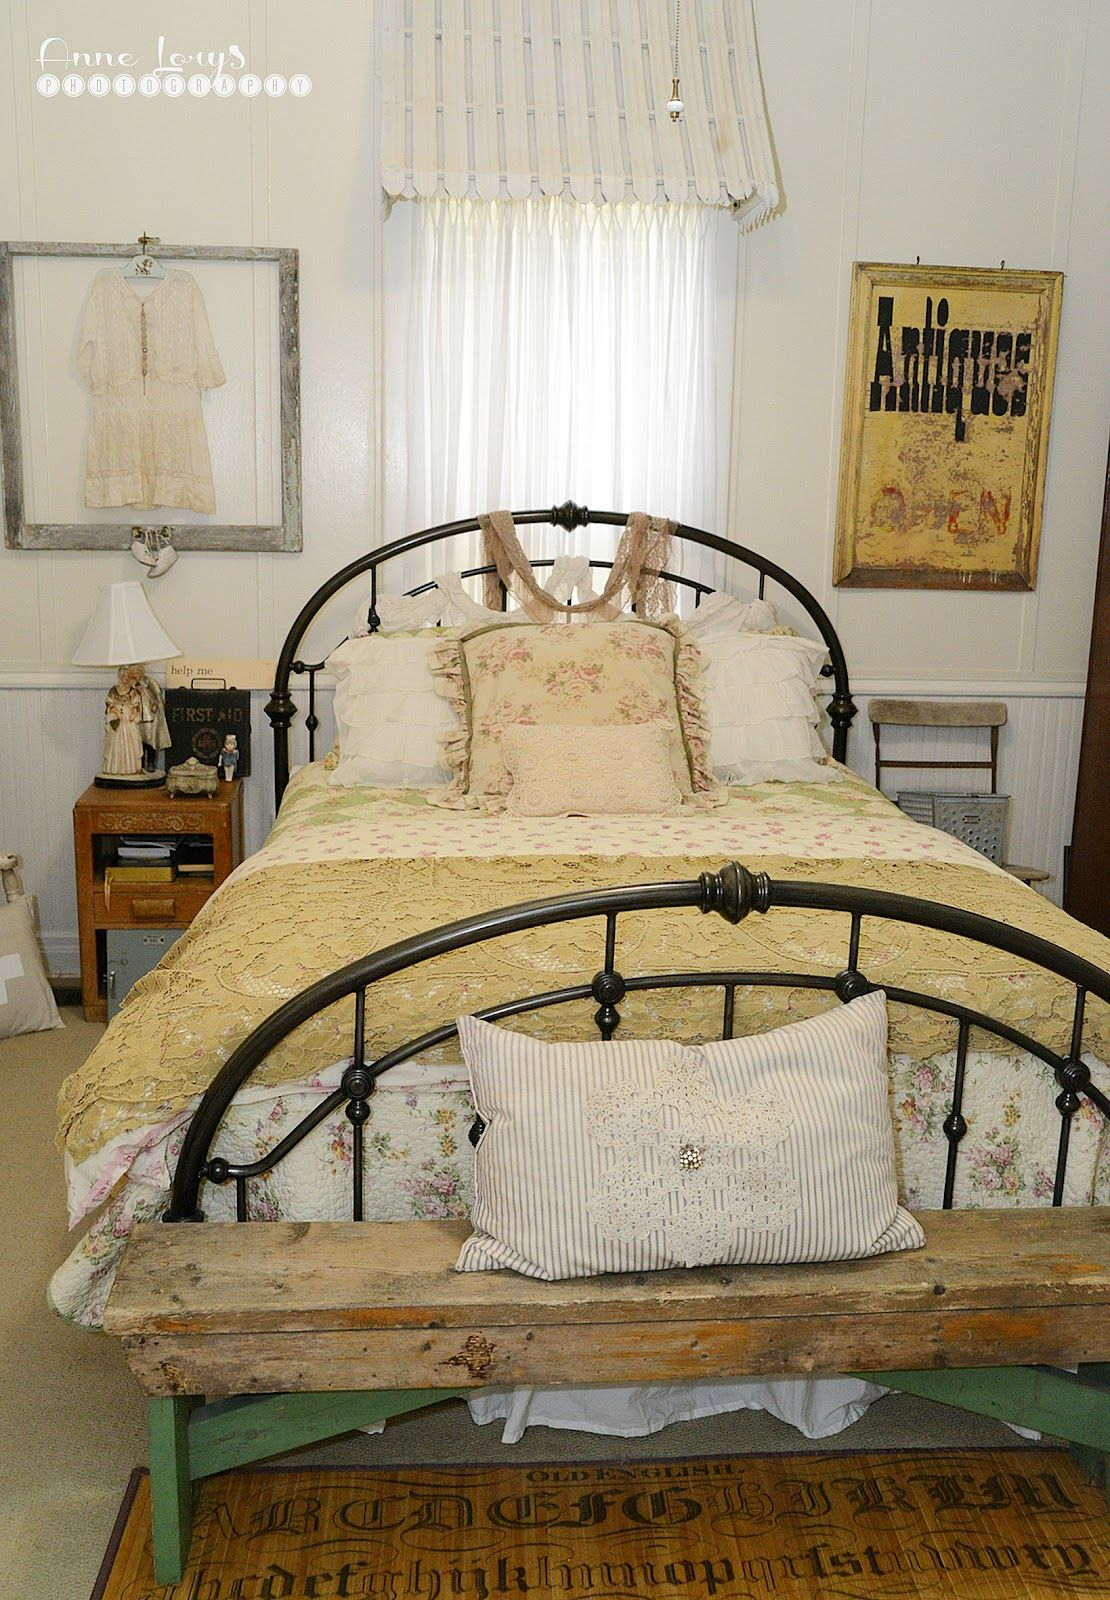 Vintage Farmhouse Bedroom Images Fiona And Twig Farmhouse Bedroom Love The Awning Over